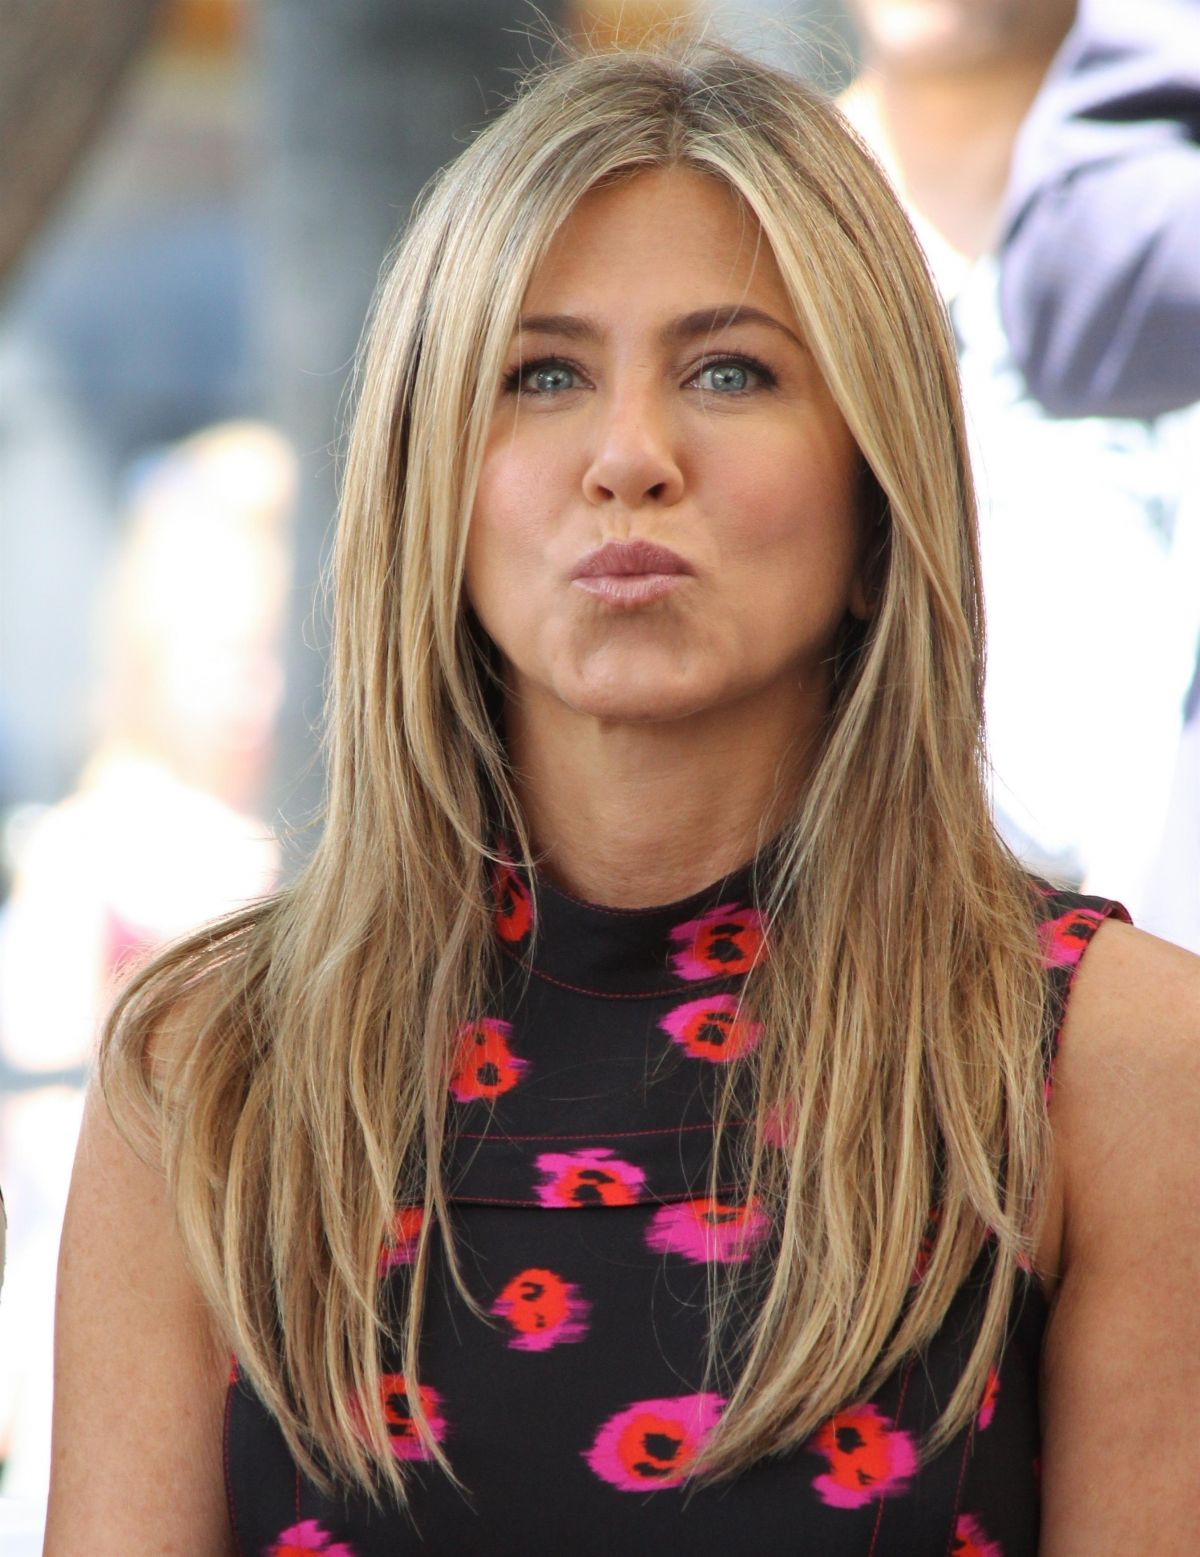 Jennifer Aniston At Jason Bateman's Hollywood Star Ceremony in Hollywood   jennifer-aniston-at-jason-bateman-s-hollywood-star-ceremony-in-hollywood_1